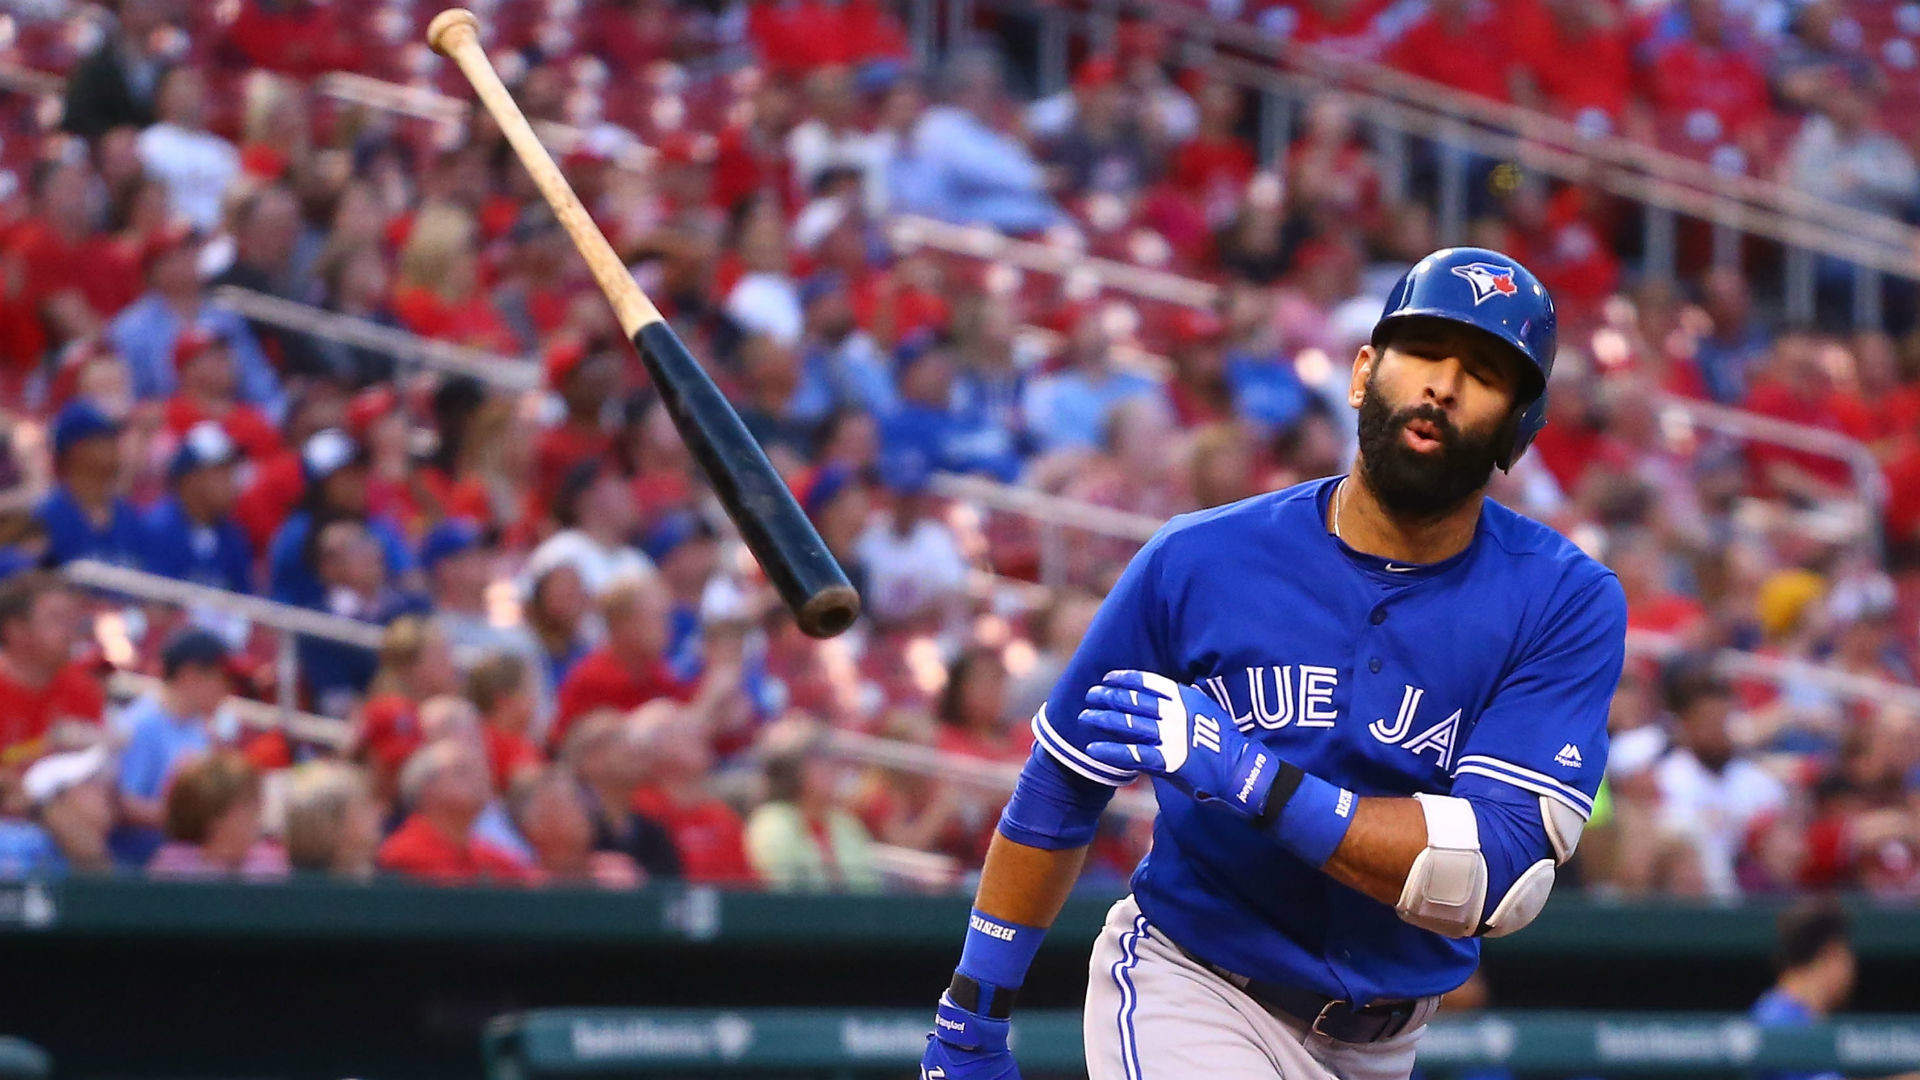 1920x1080 Jose Bautista's bat flip is the dumbest thing in baseball this week | MLB |  Sporting News